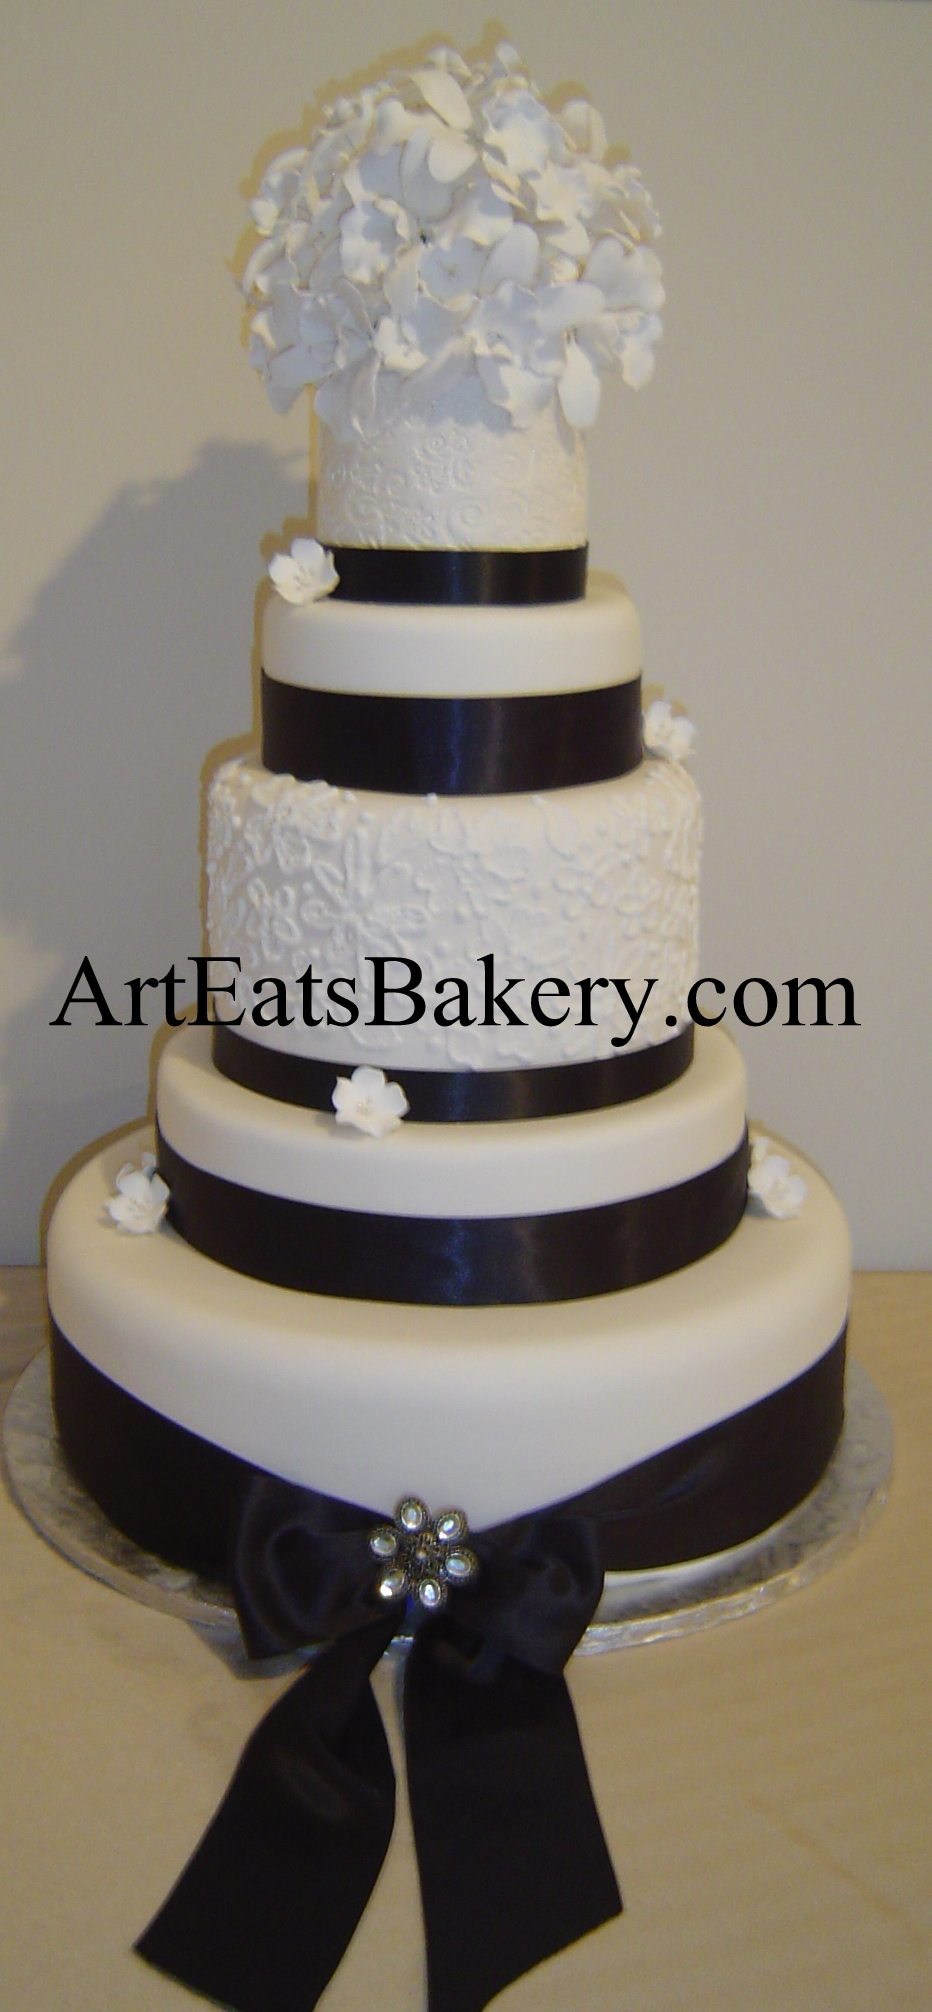 5 tier custom unique elegant Black and white wedding cake design with sugar orchid flower topper, ribbons, bow and brush embroidery.jpg